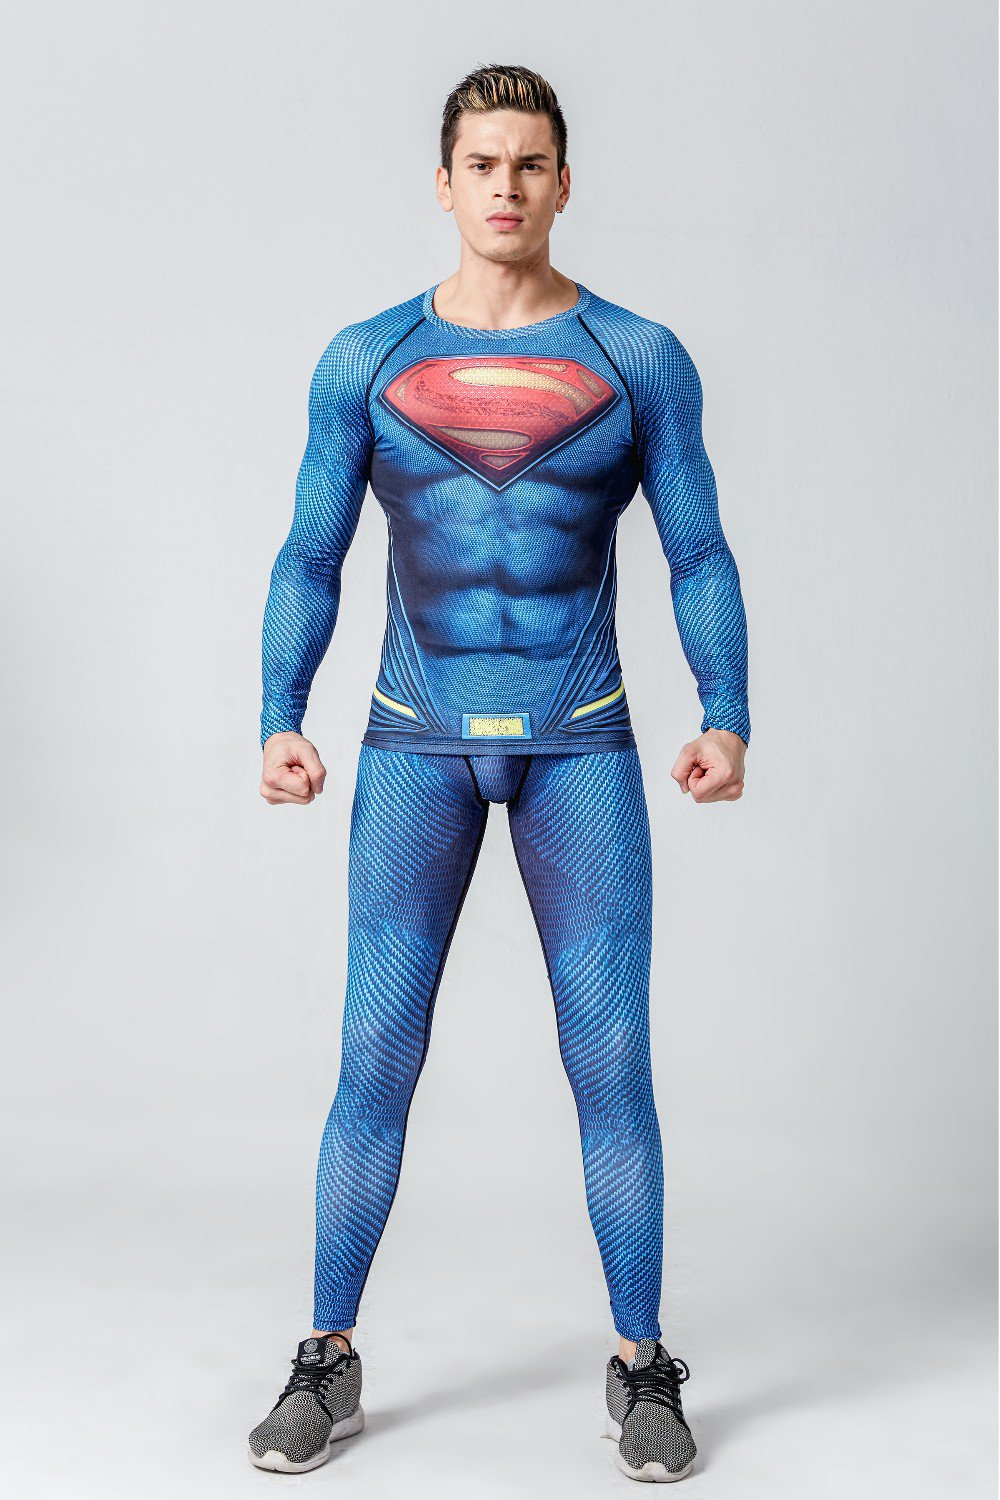 Get the superhero look you want with our licensed superhero running gear. From t-shirts to shirts with capes to socks, we have what you want for your S.